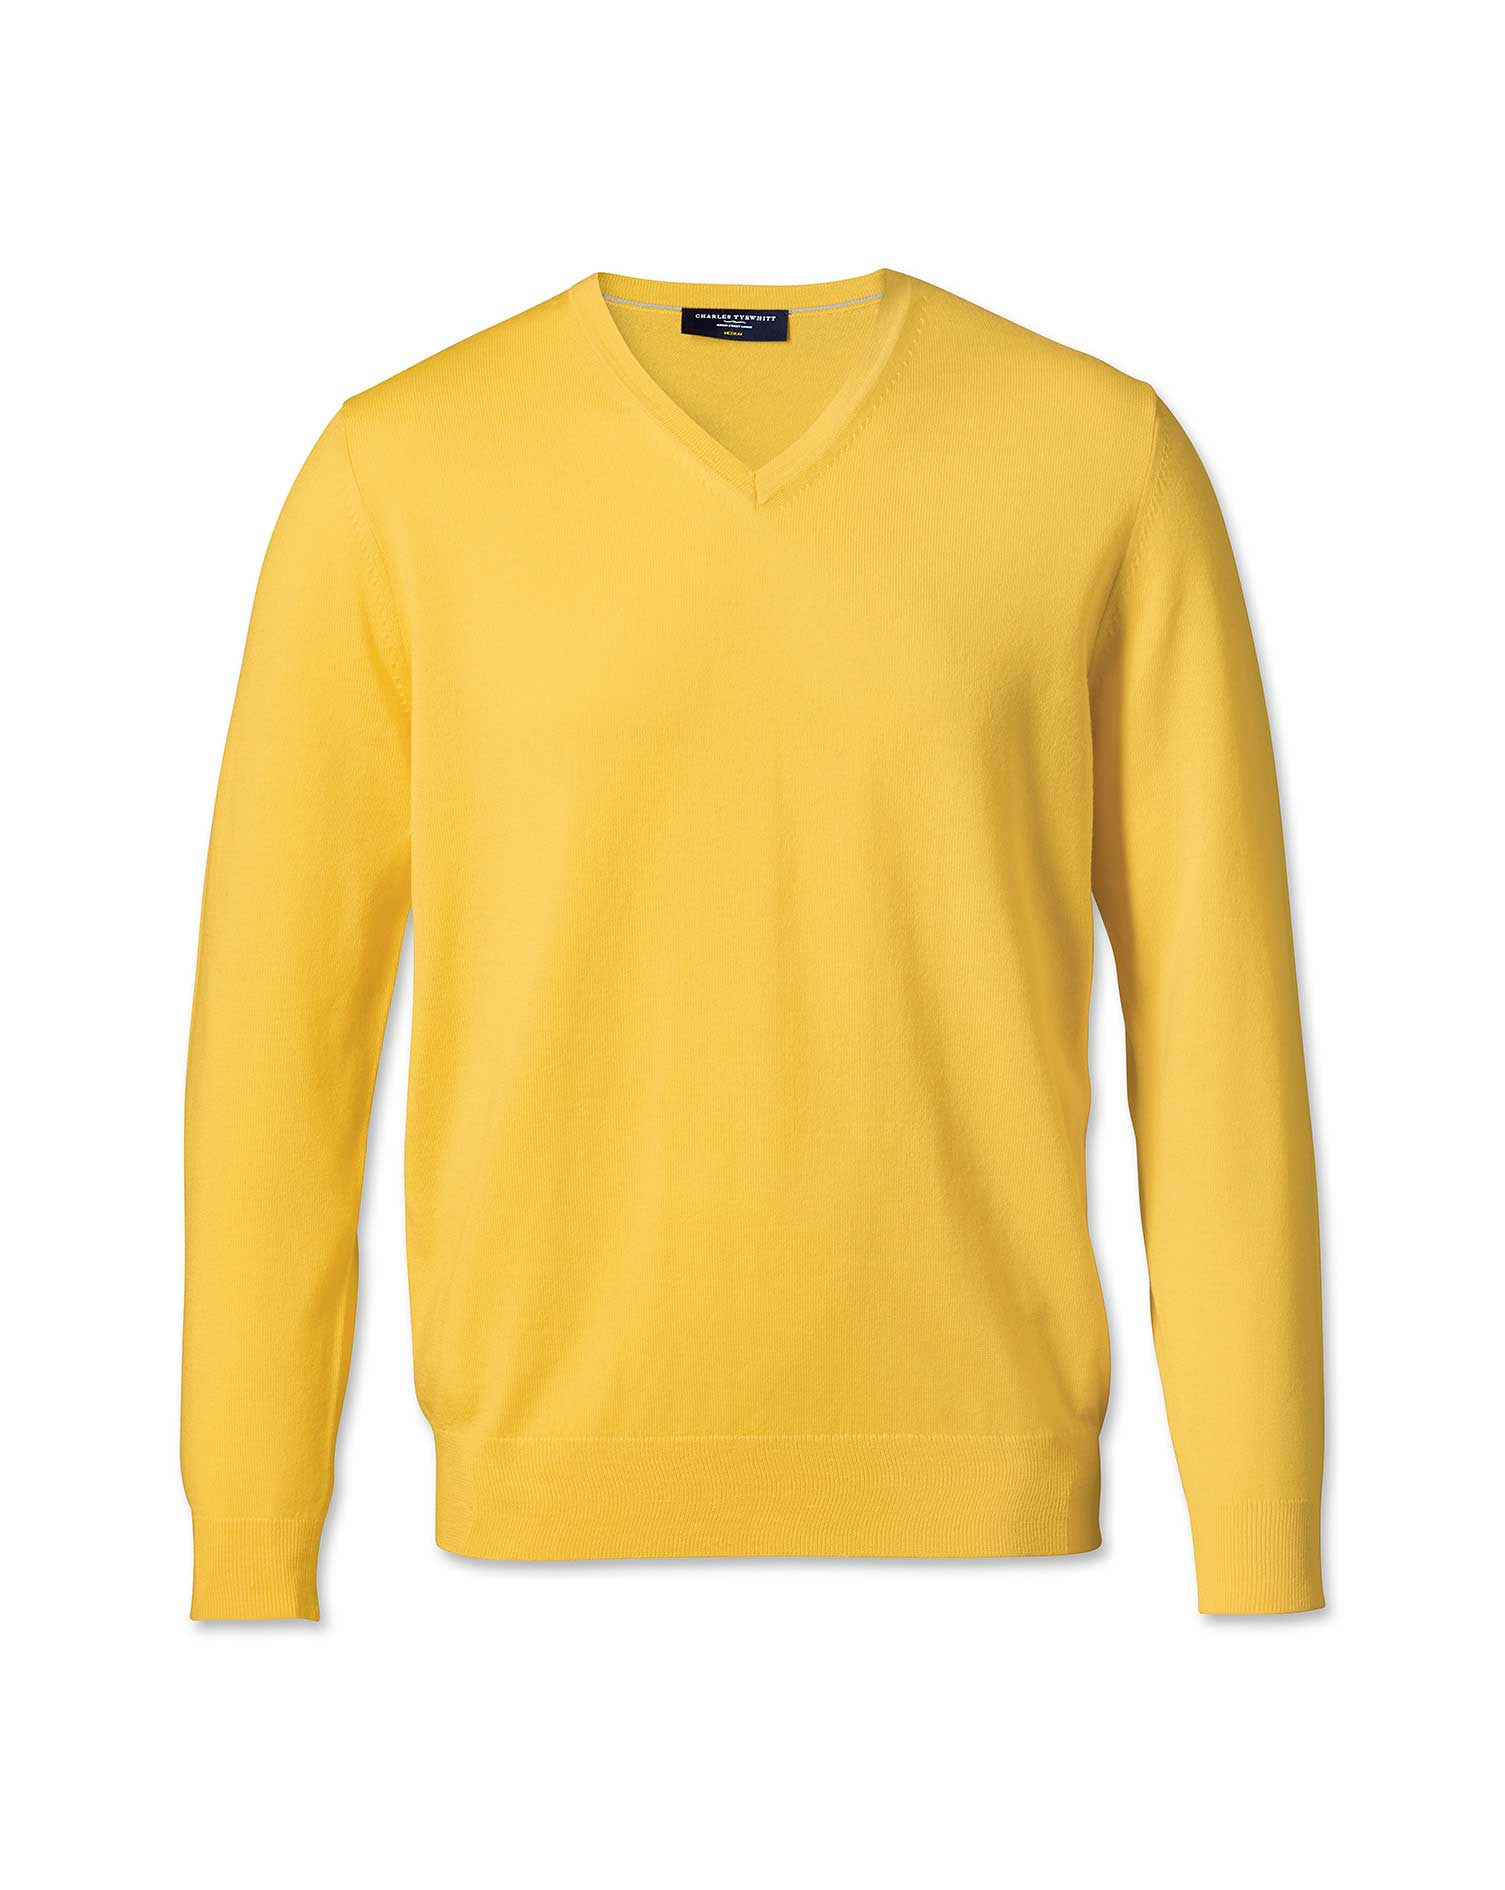 Yellow merino wool v-neck sweater | Charles Tyrwhitt